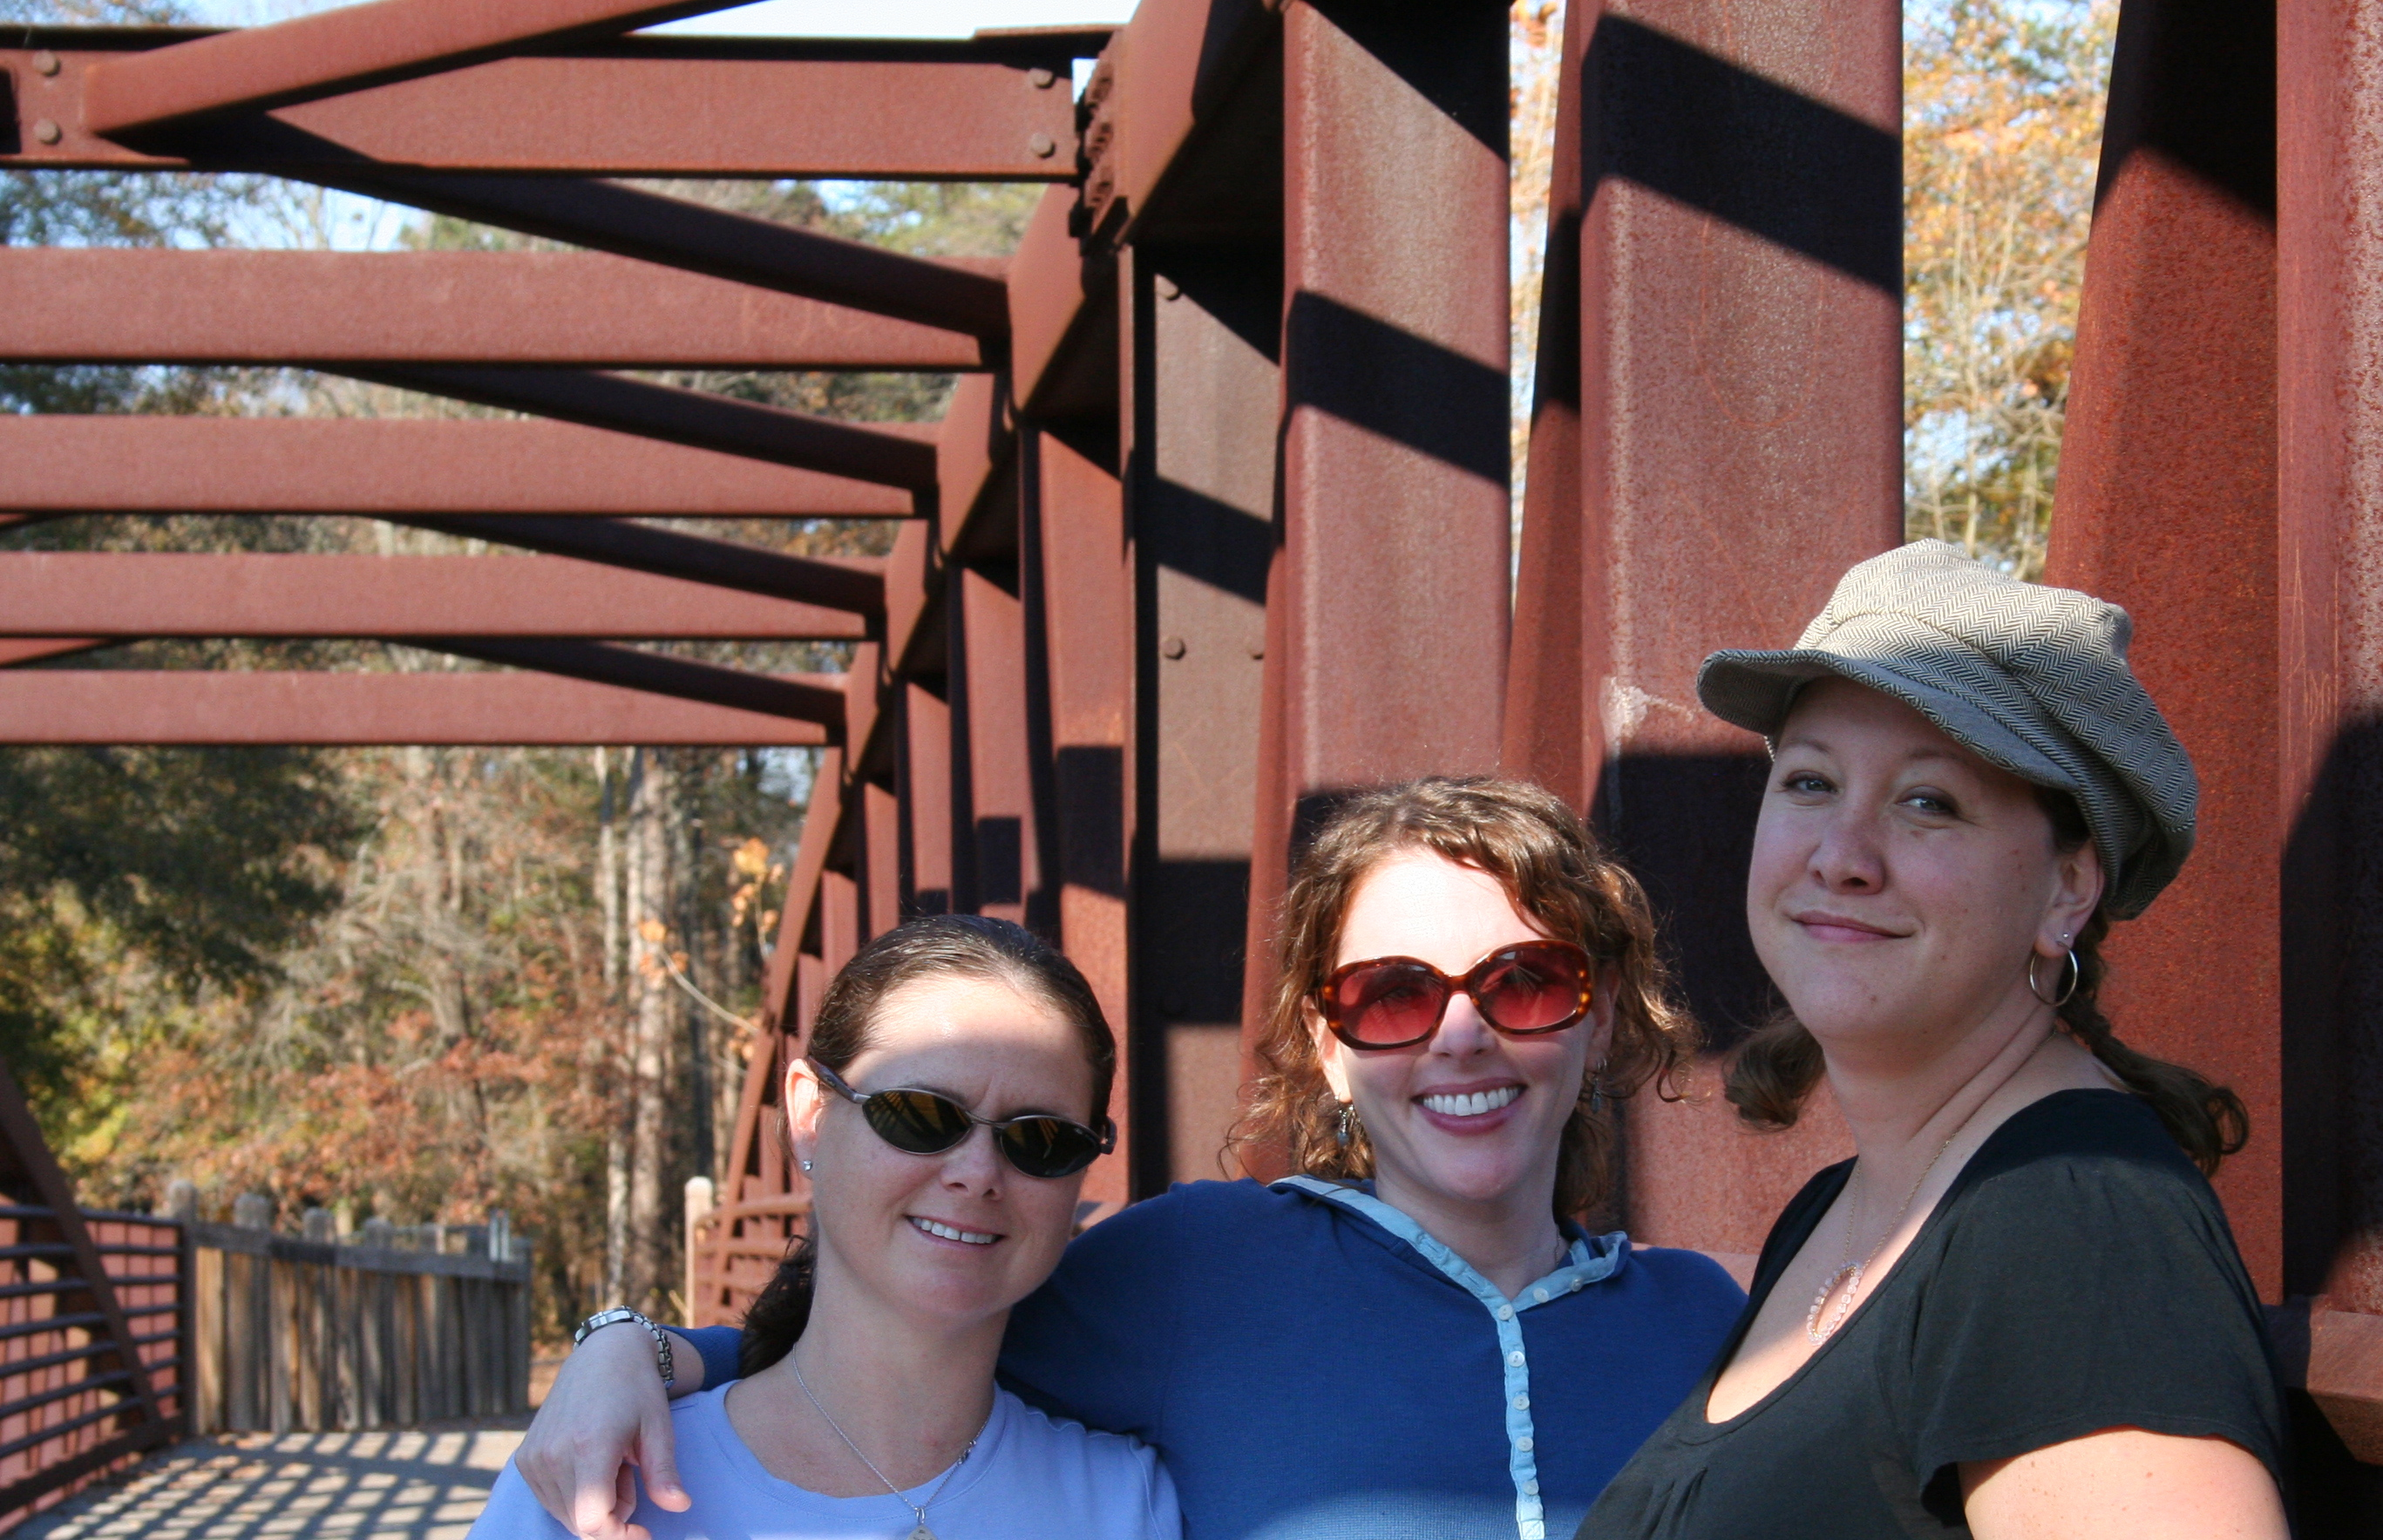 Me and the girls on the bridge.